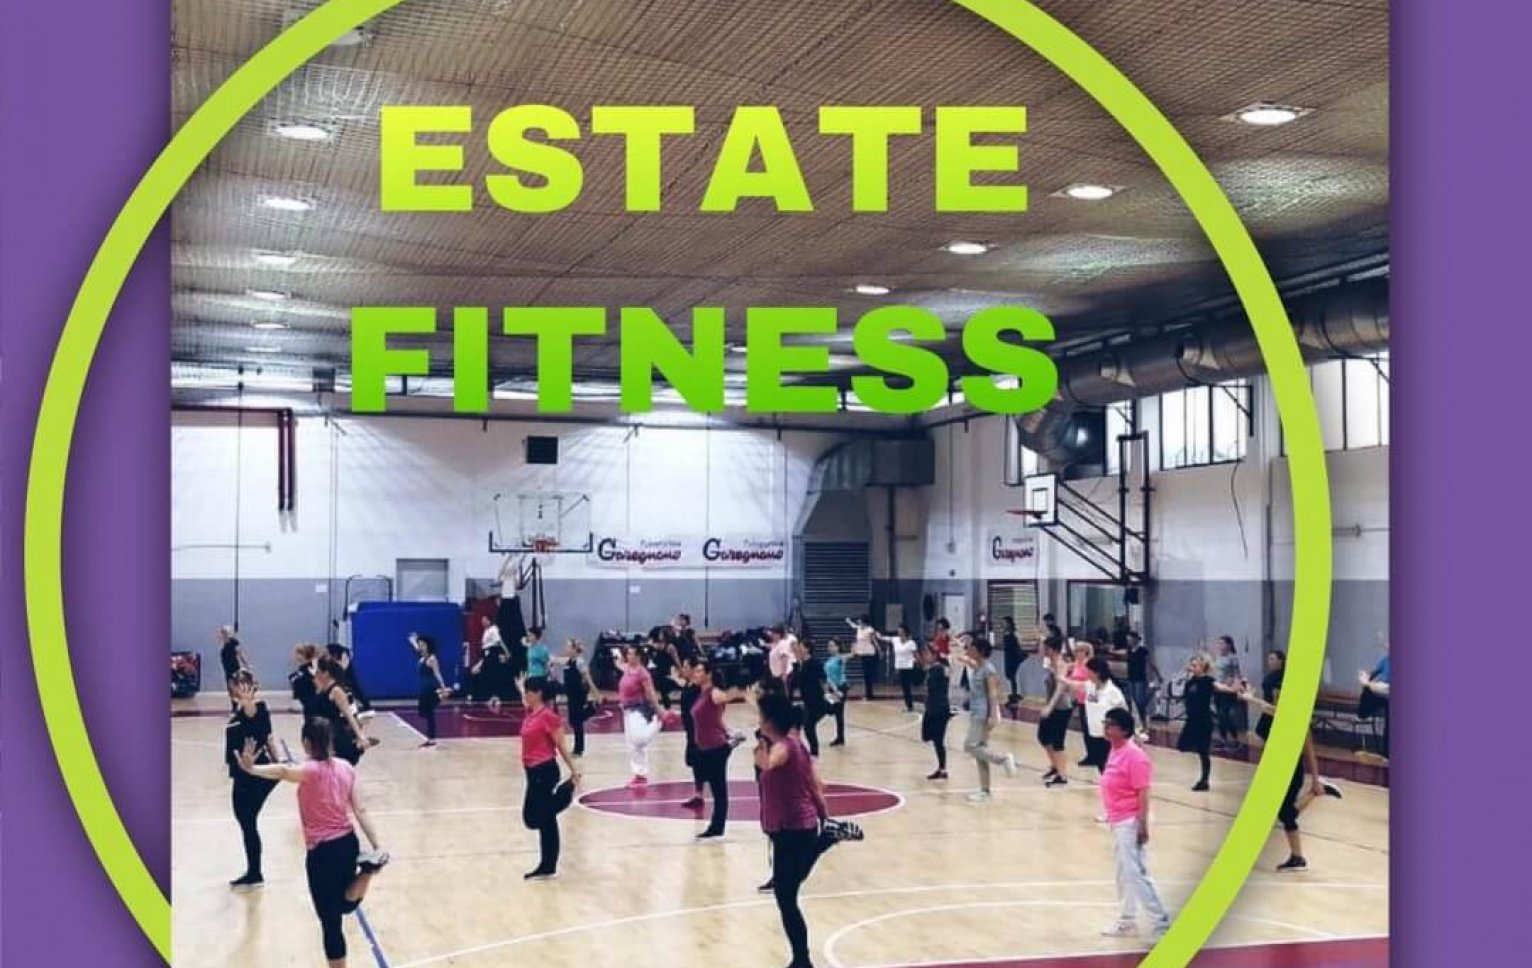 FITNESS ESTATE